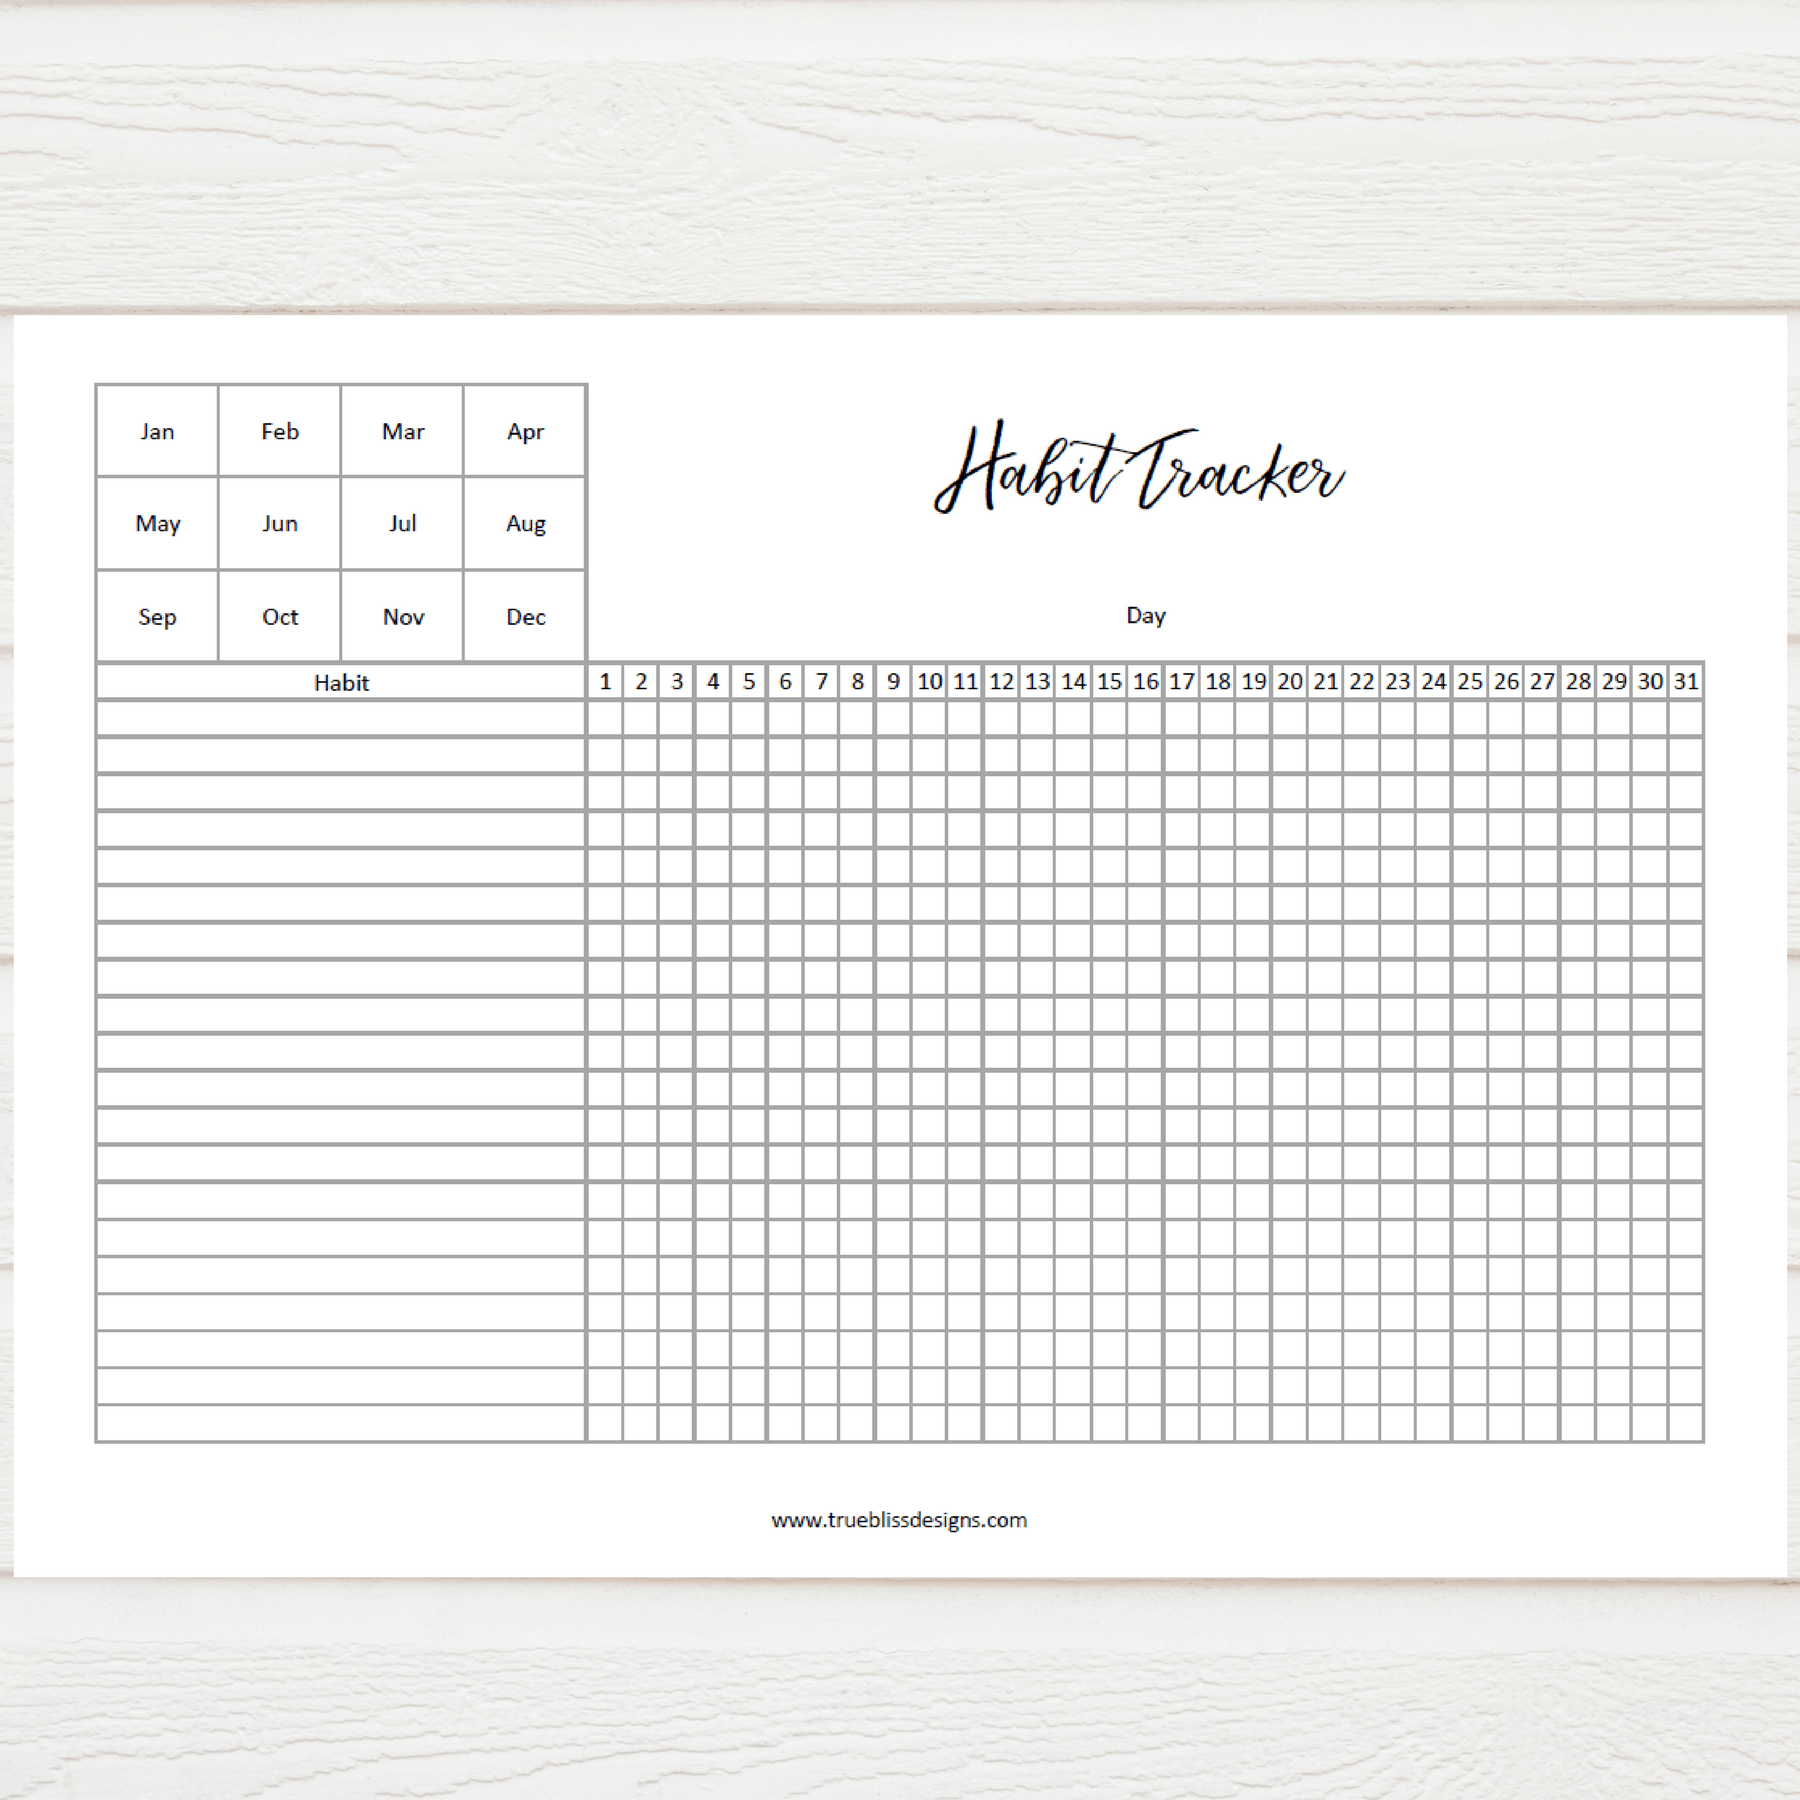 photograph relating to Habit Tracker Printable Free identified as Behavior Tracker - Accurate Bliss Strategies